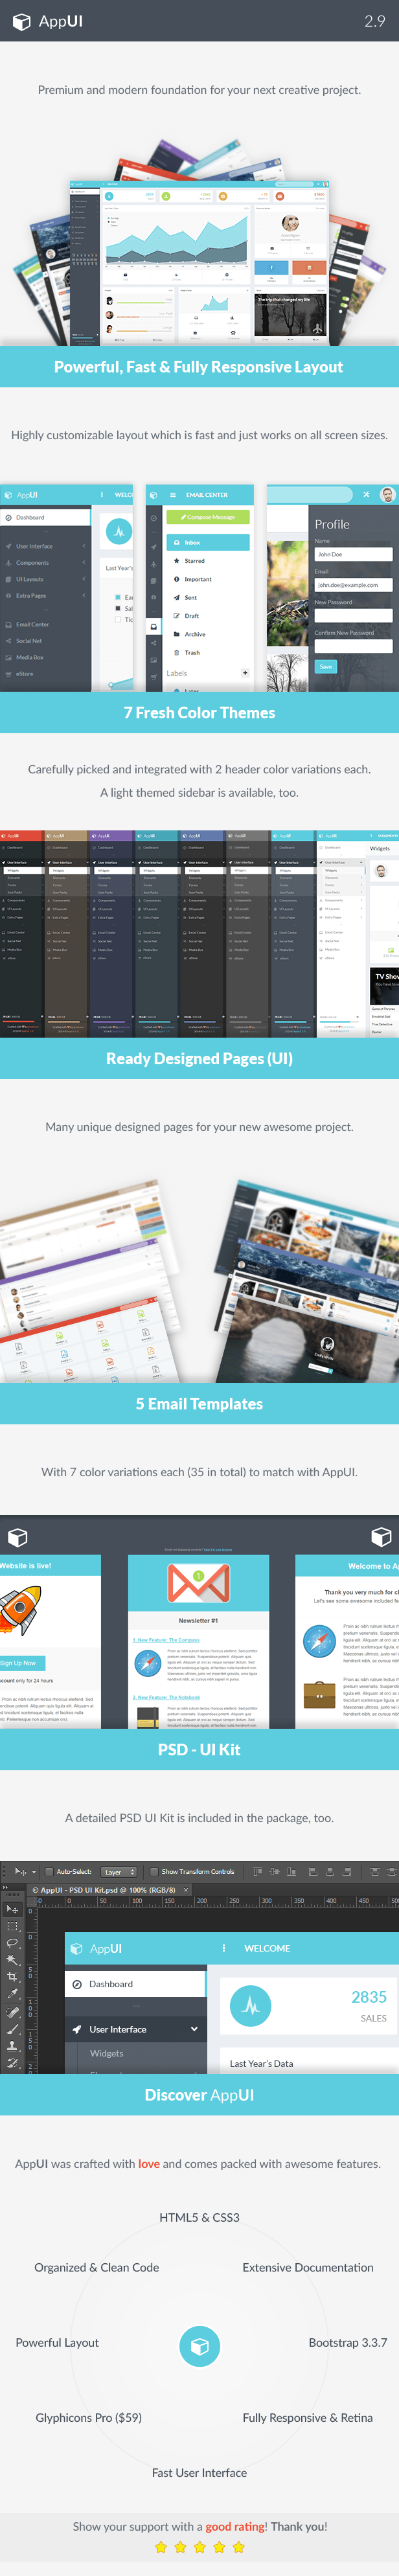 AppUI - Web App Bootstrap Admin Template - 8